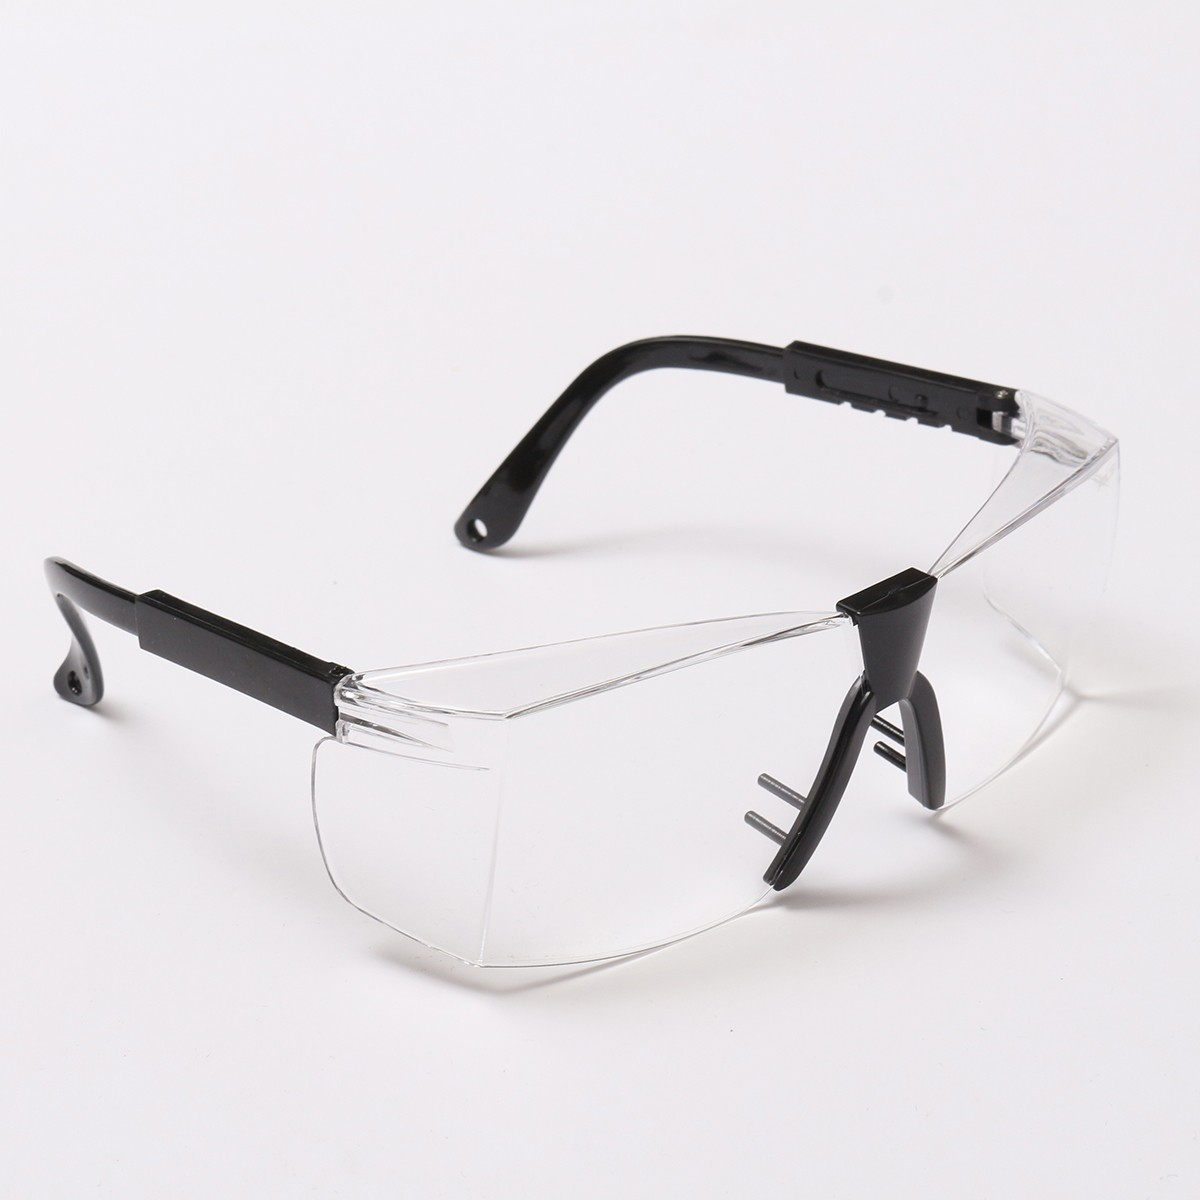 10600nm Professional Protection Glasses Goggles Double-Layer Fr Carbon Dioxide CO2 Laser